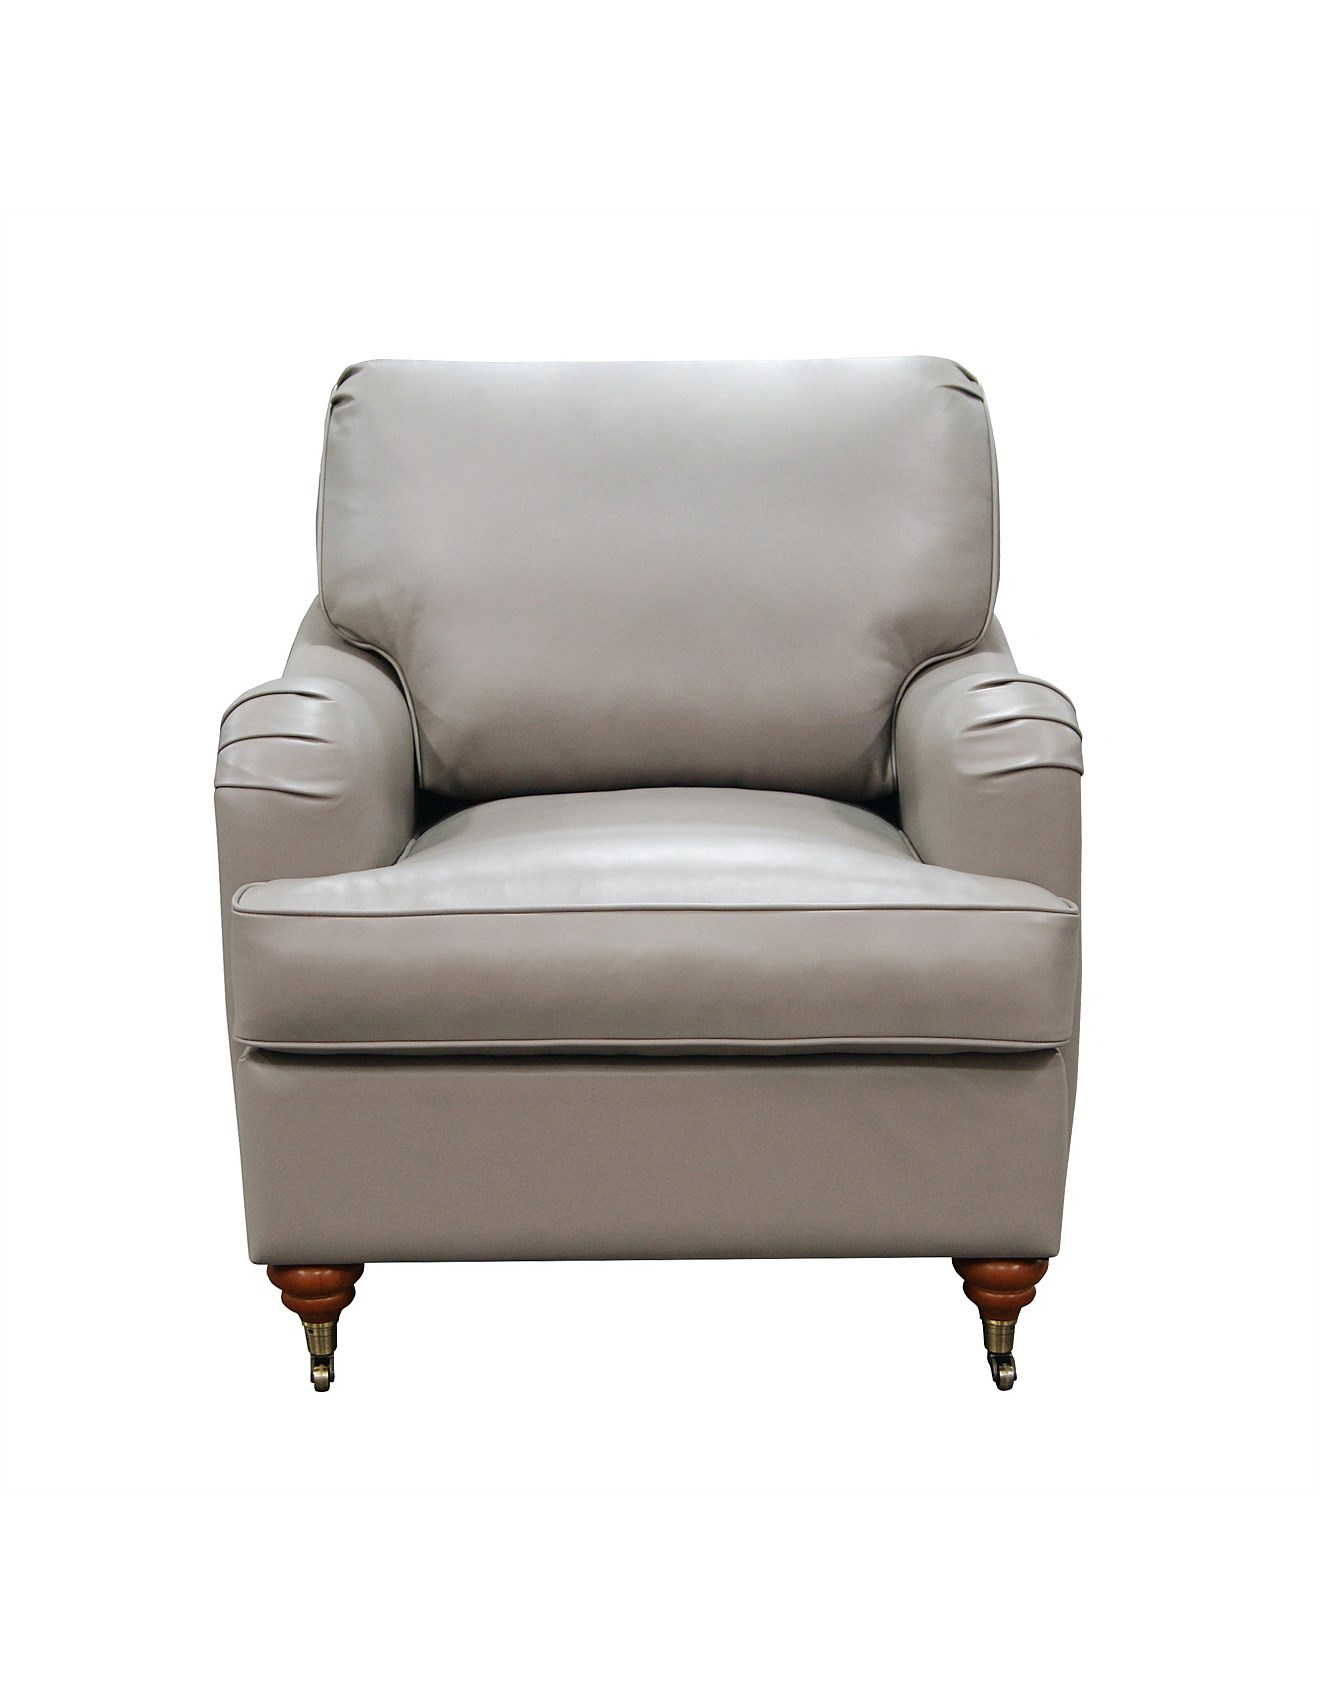 Leather Recliner Chairs David Jones Furniture Tables Sofas Armchairs And More David Jones